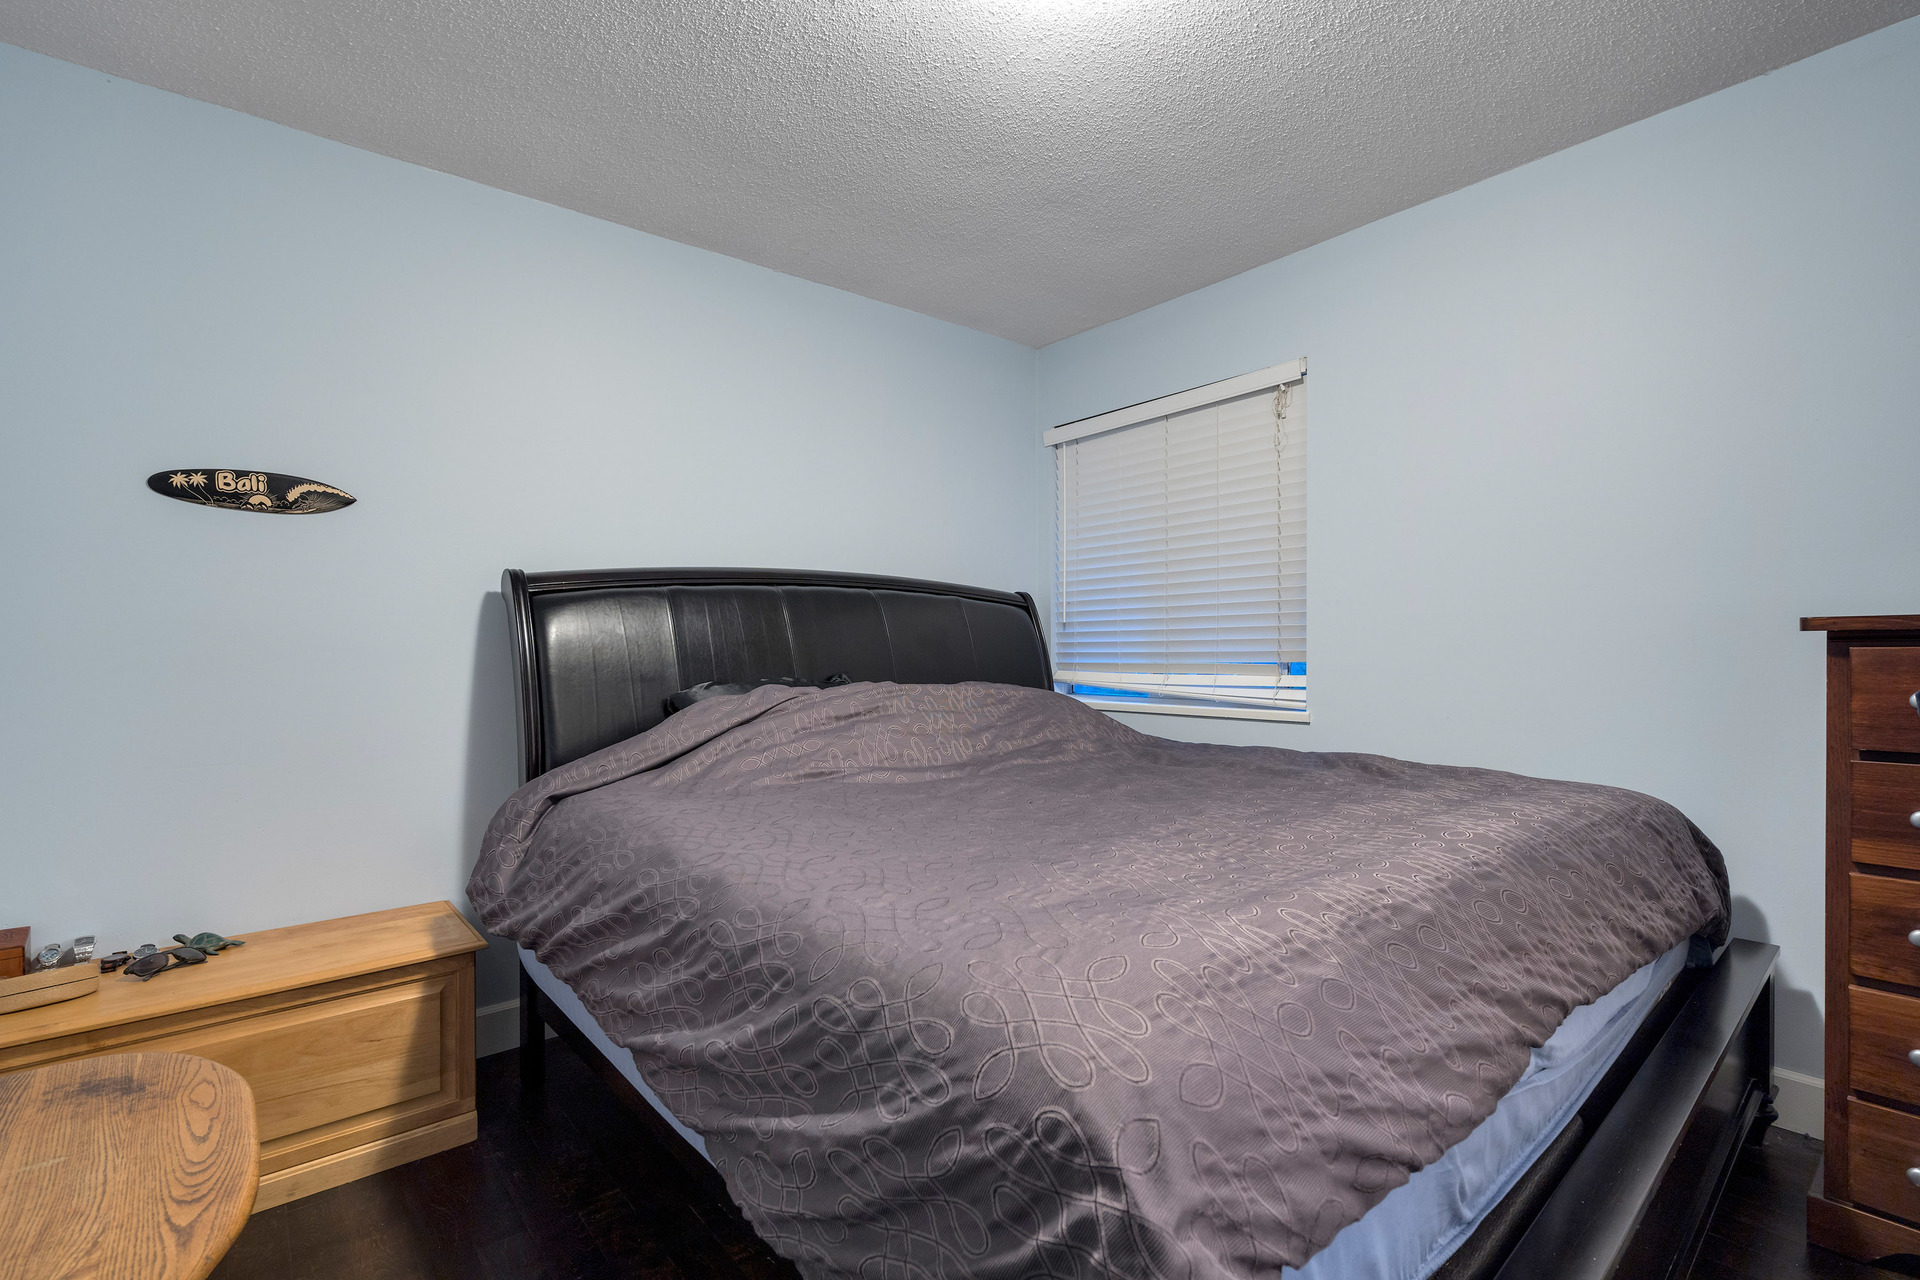 477f6d1 at 4753 Woodrow Crescent, Lynn Valley, North Vancouver